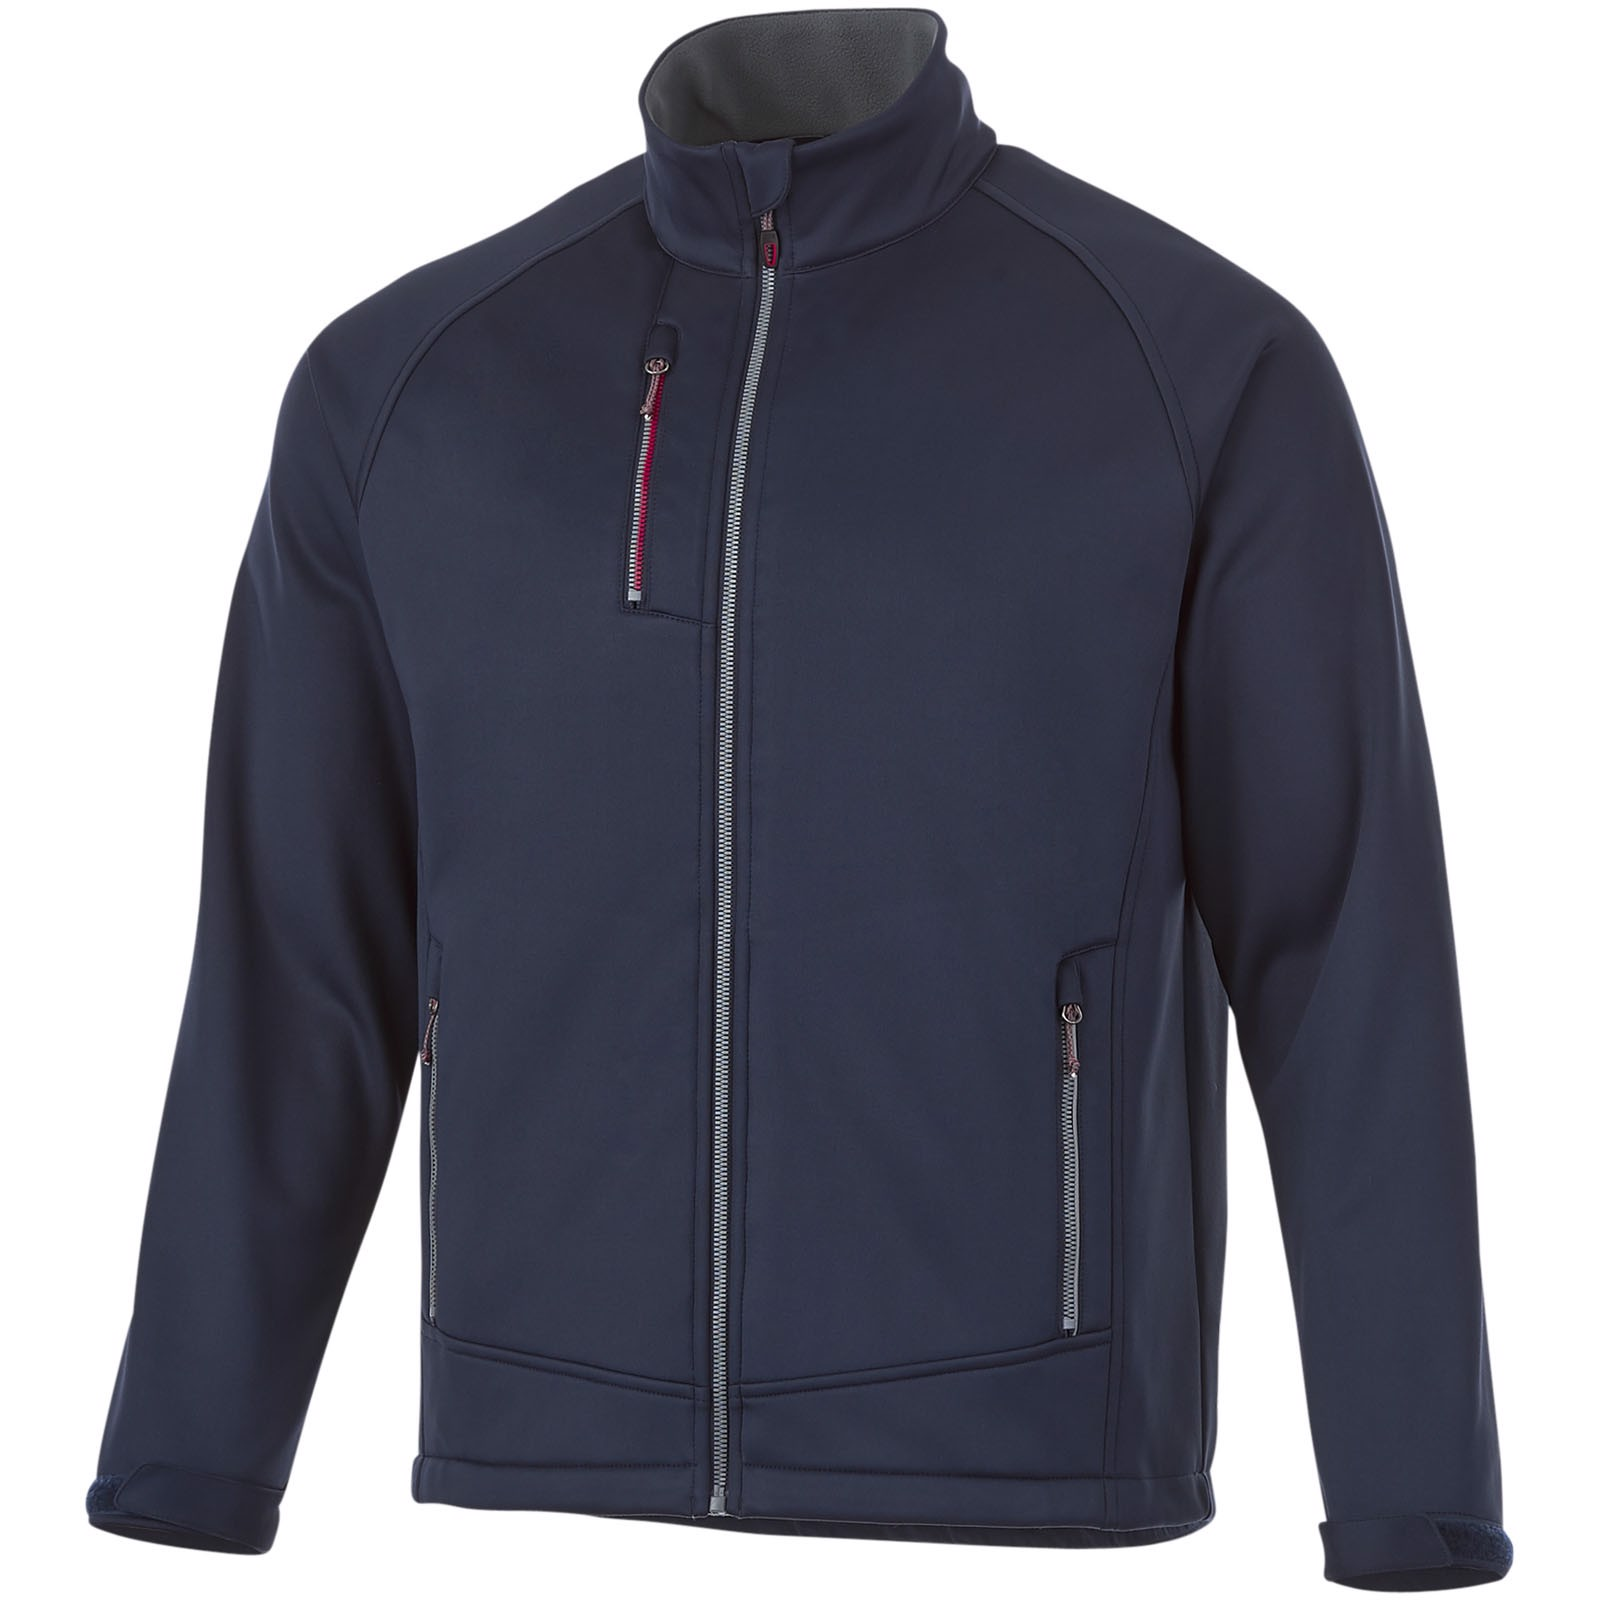 Chuck softshell jacket - Navy / XS